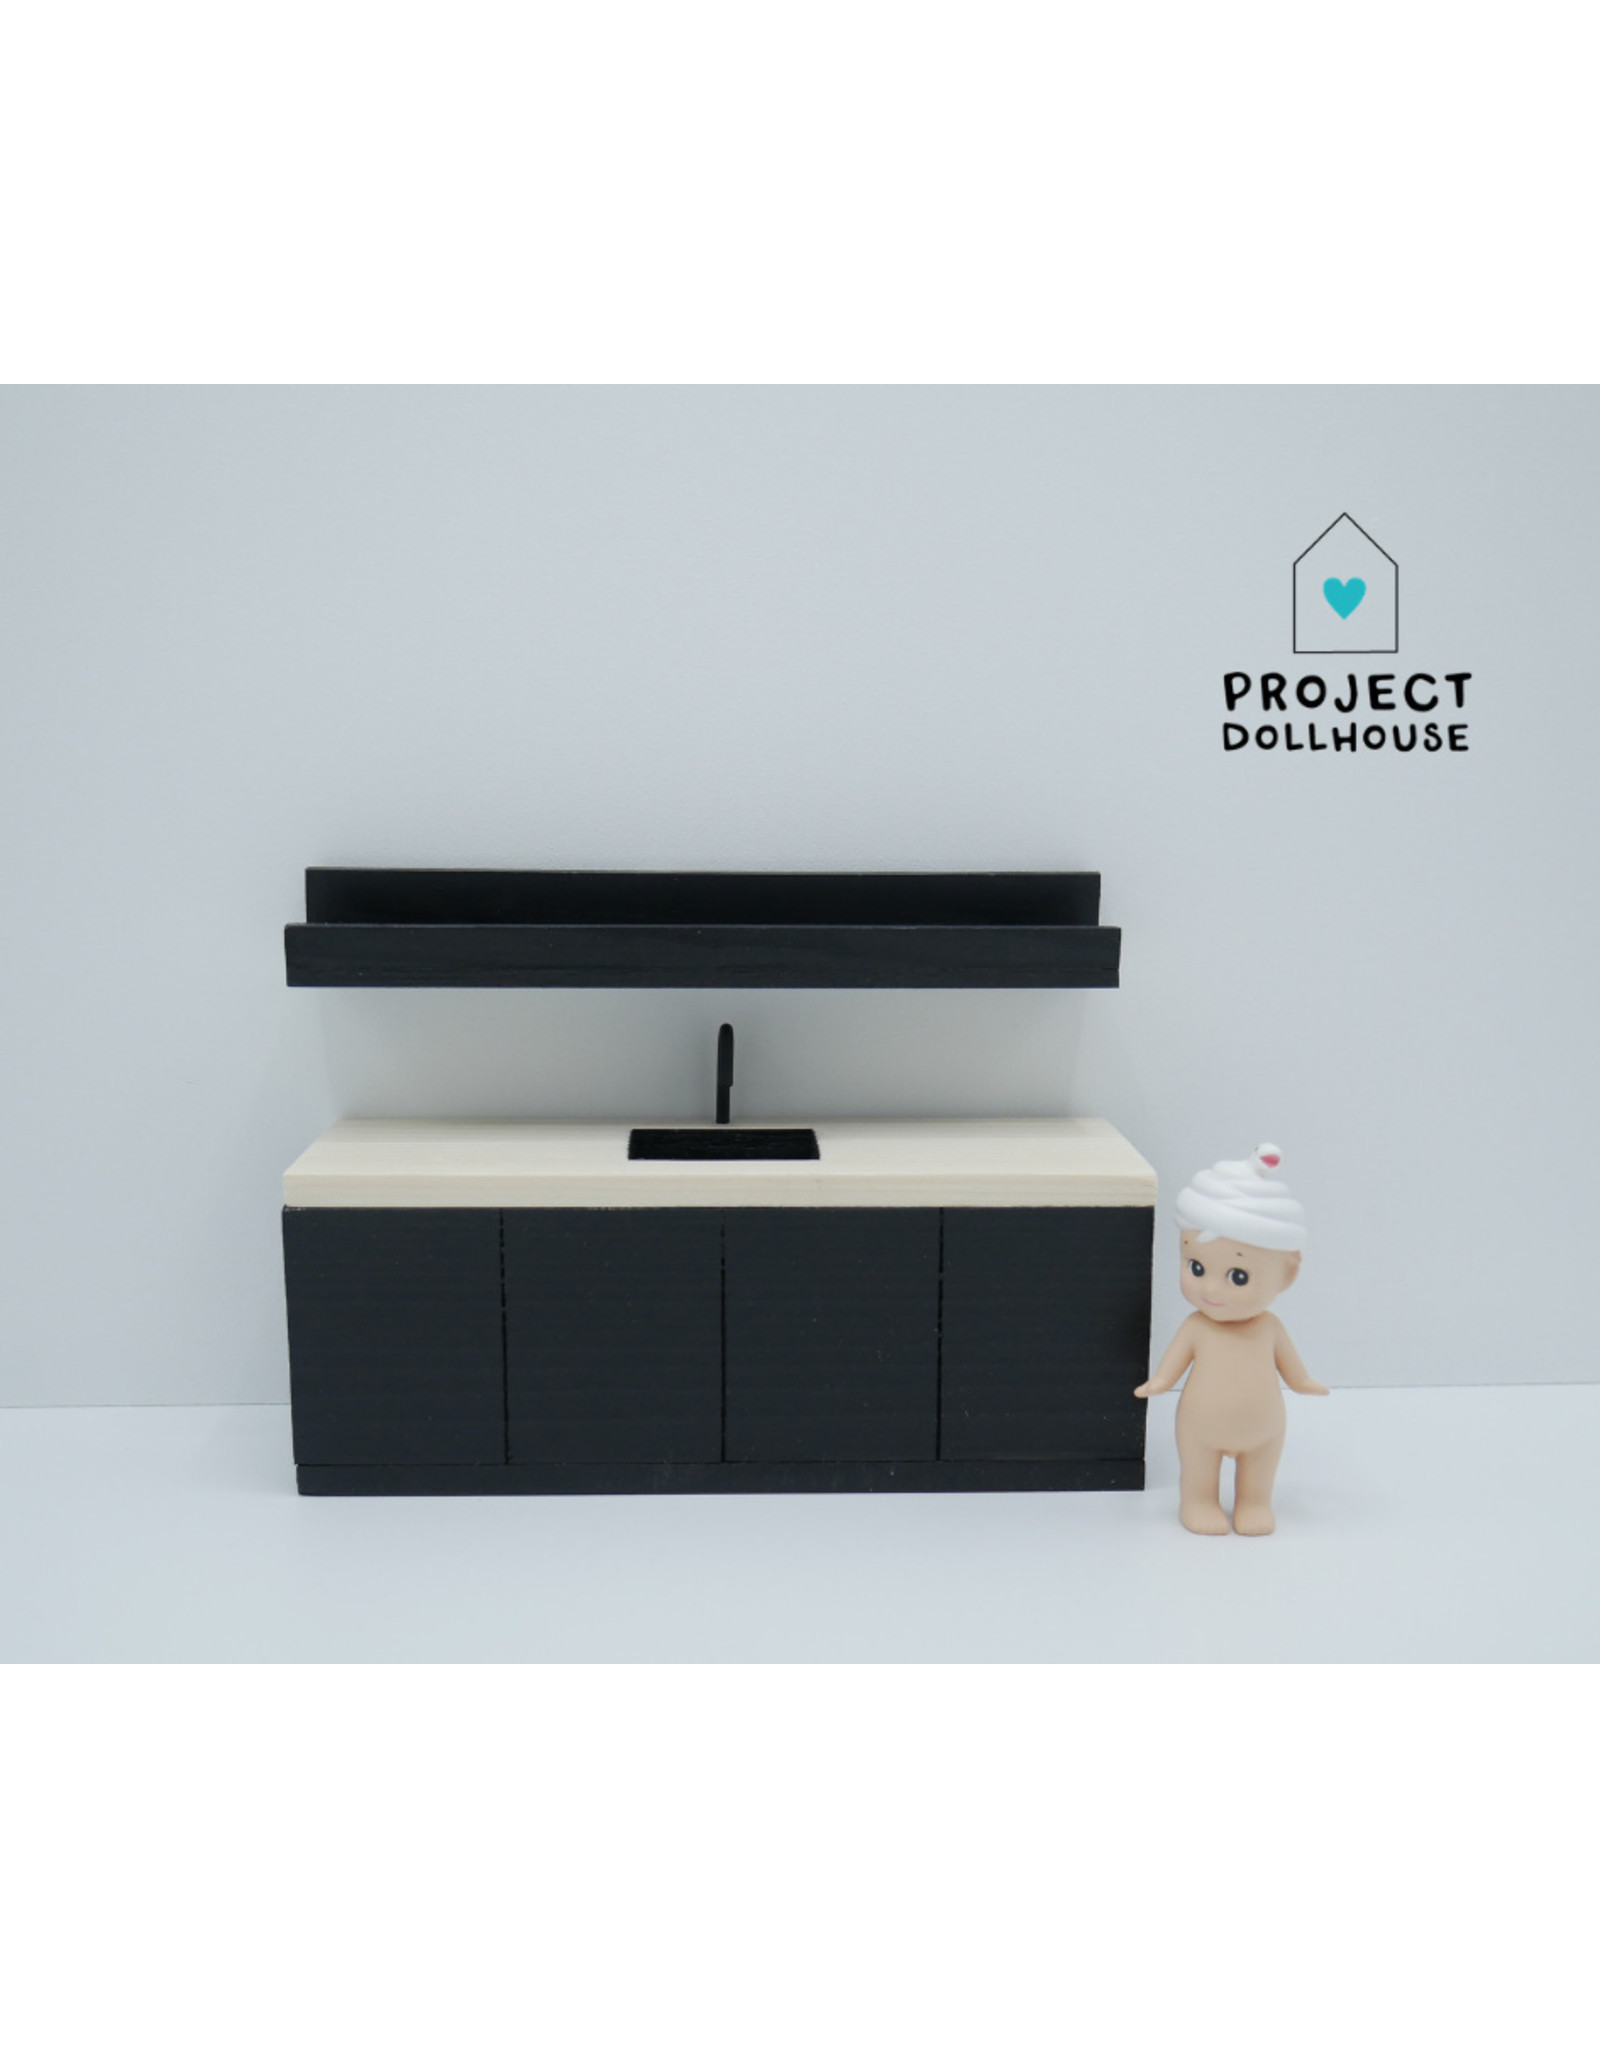 Project Dollhouse Black kitchen with wooden countertop 18 cm